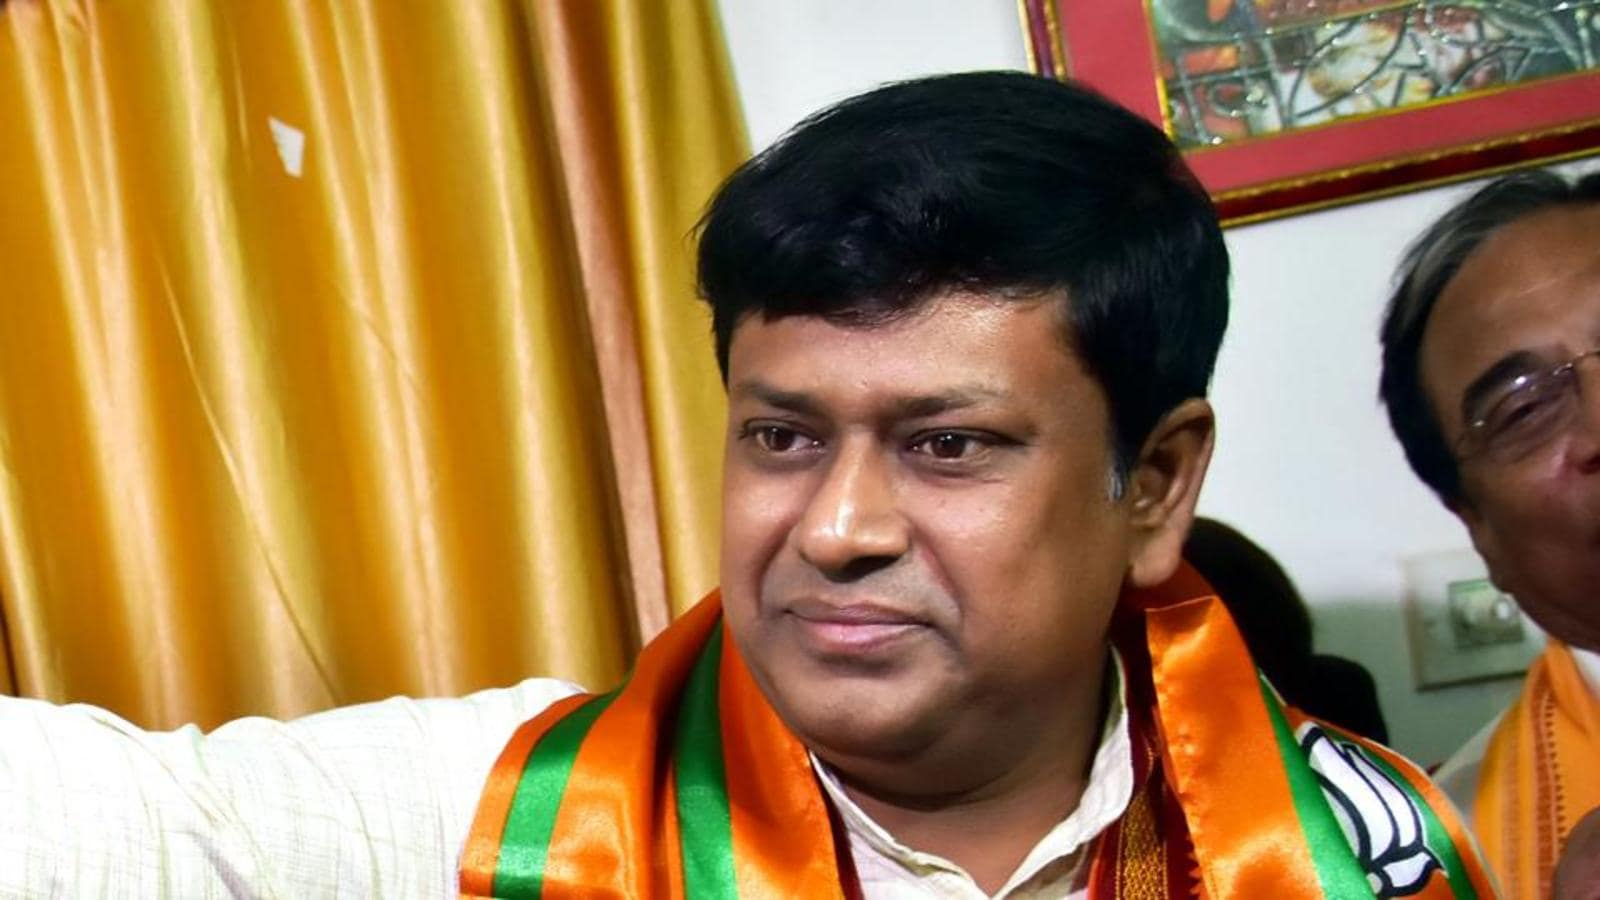 At BJP's East Burdwan unit meet, rival factions hurl chairs at each other